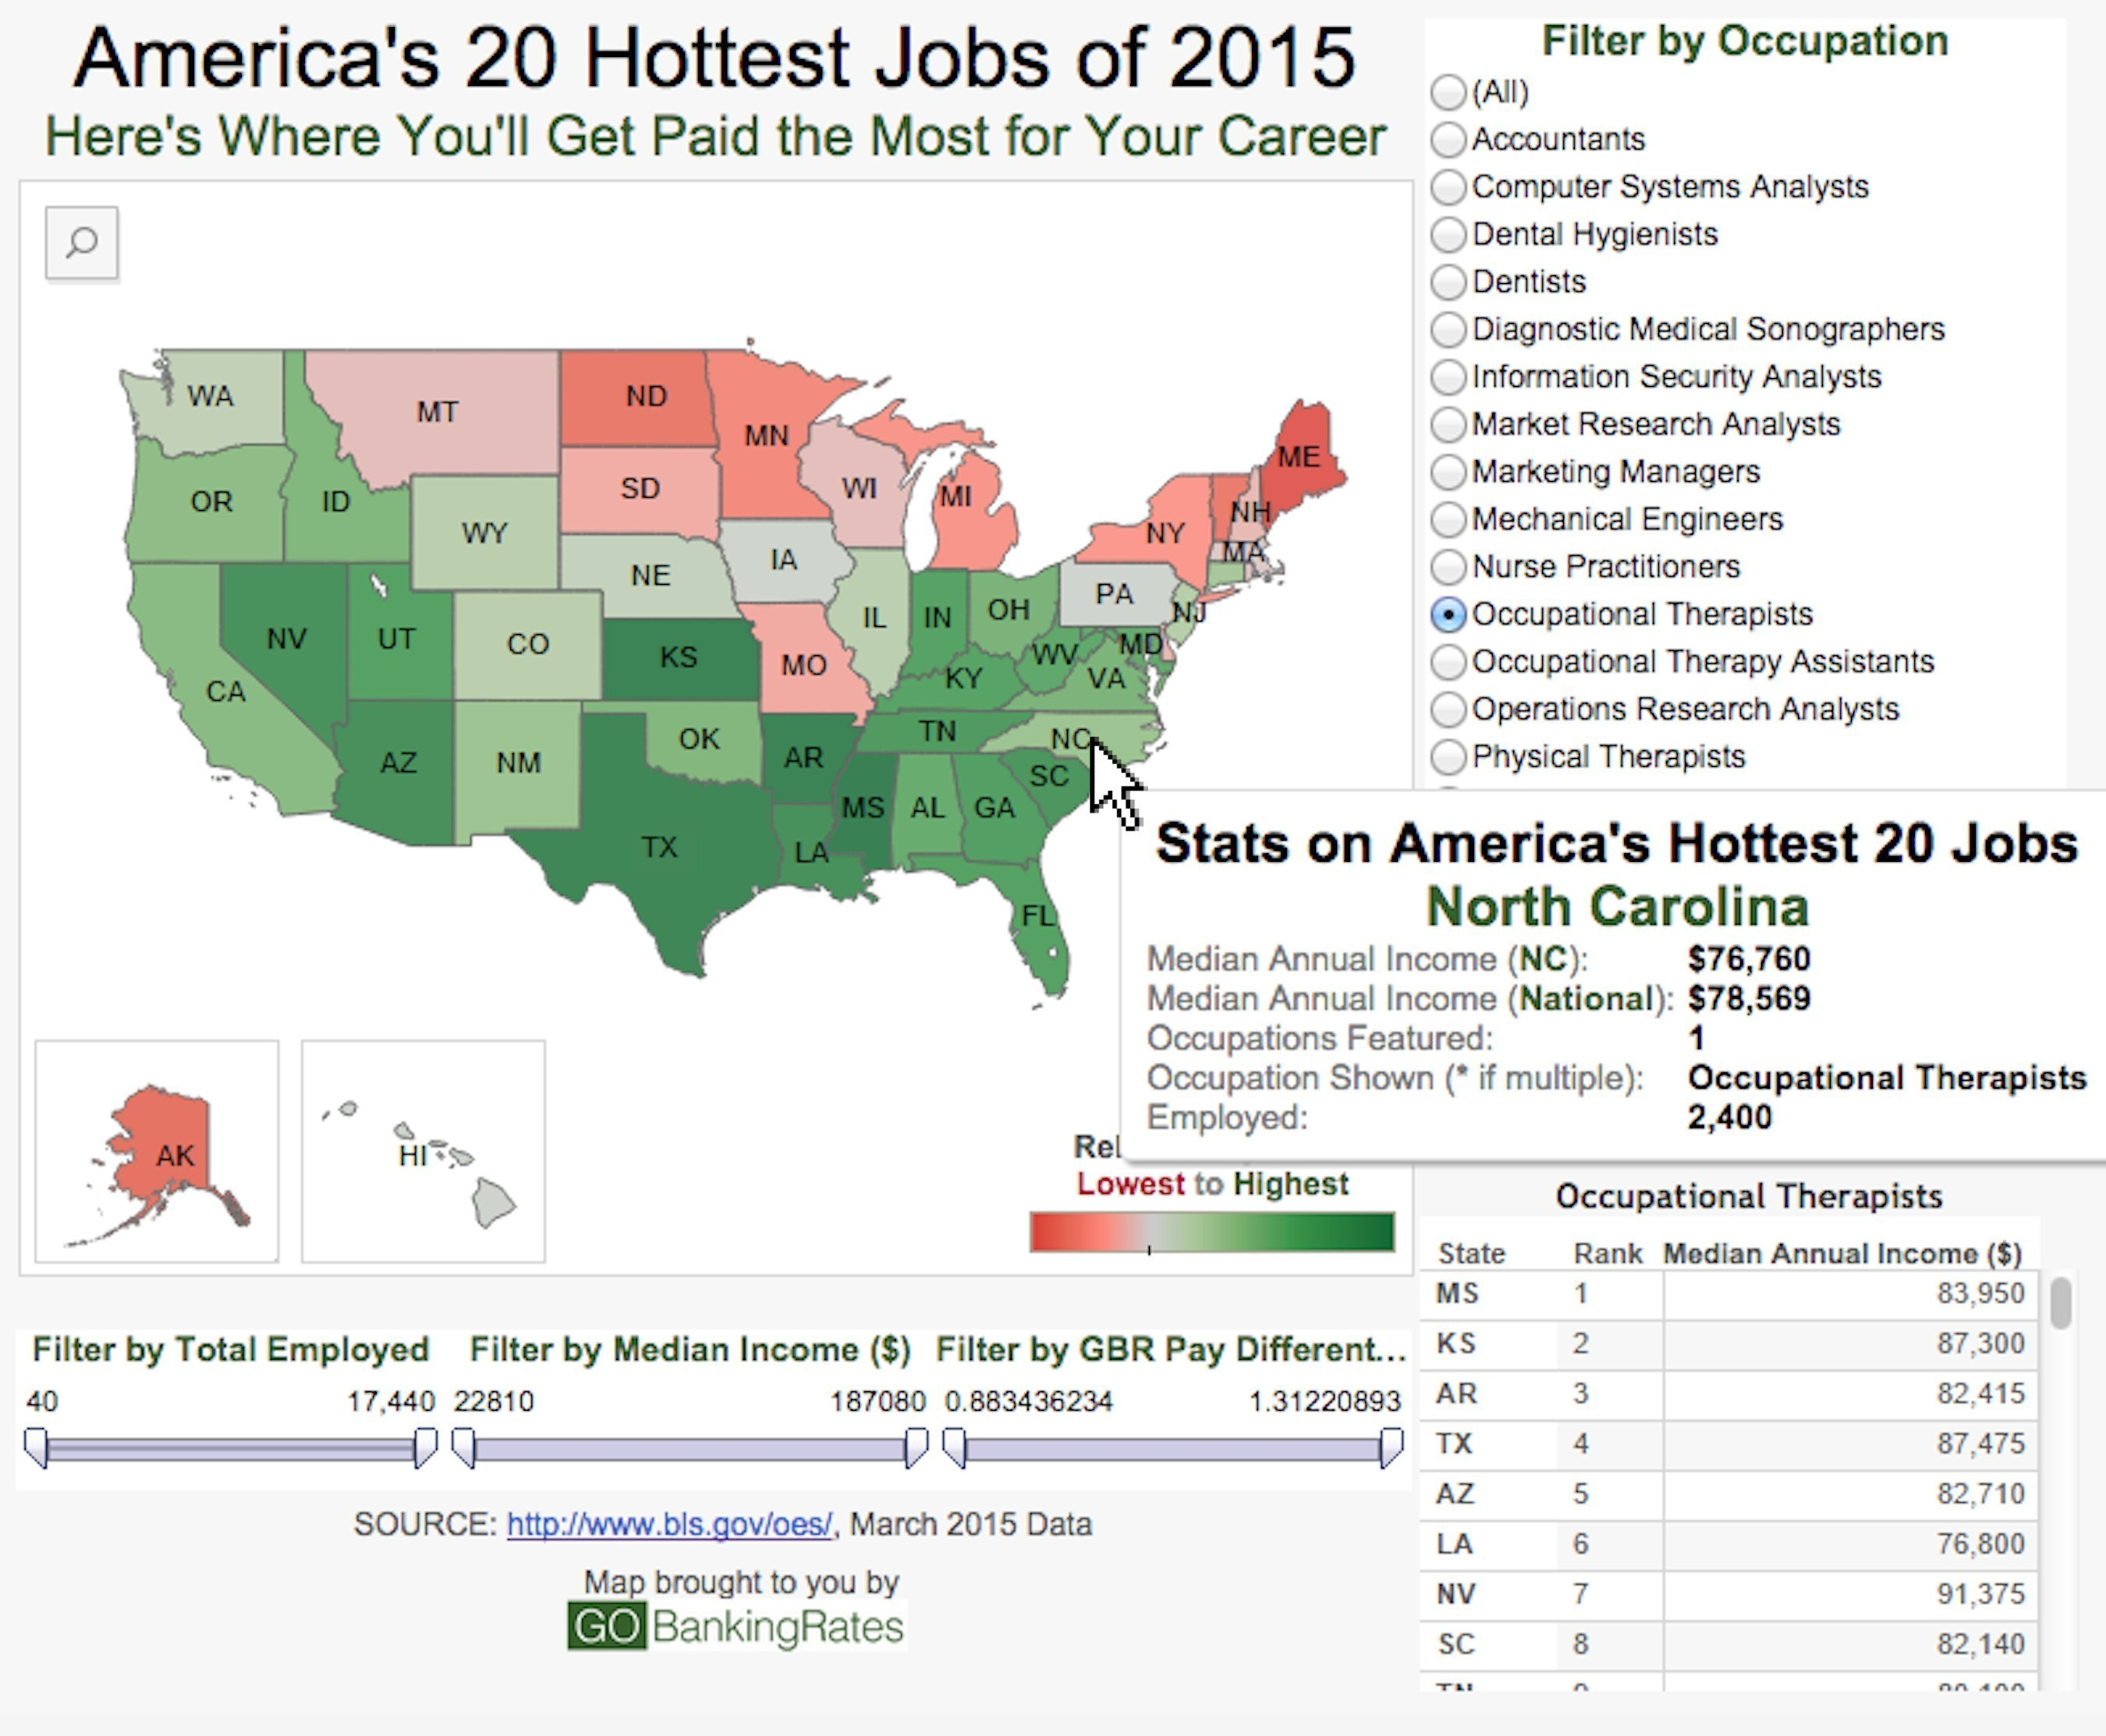 Interactive map shows what you'd earn in your job based on where you live: http://bit.ly/1OIHp41